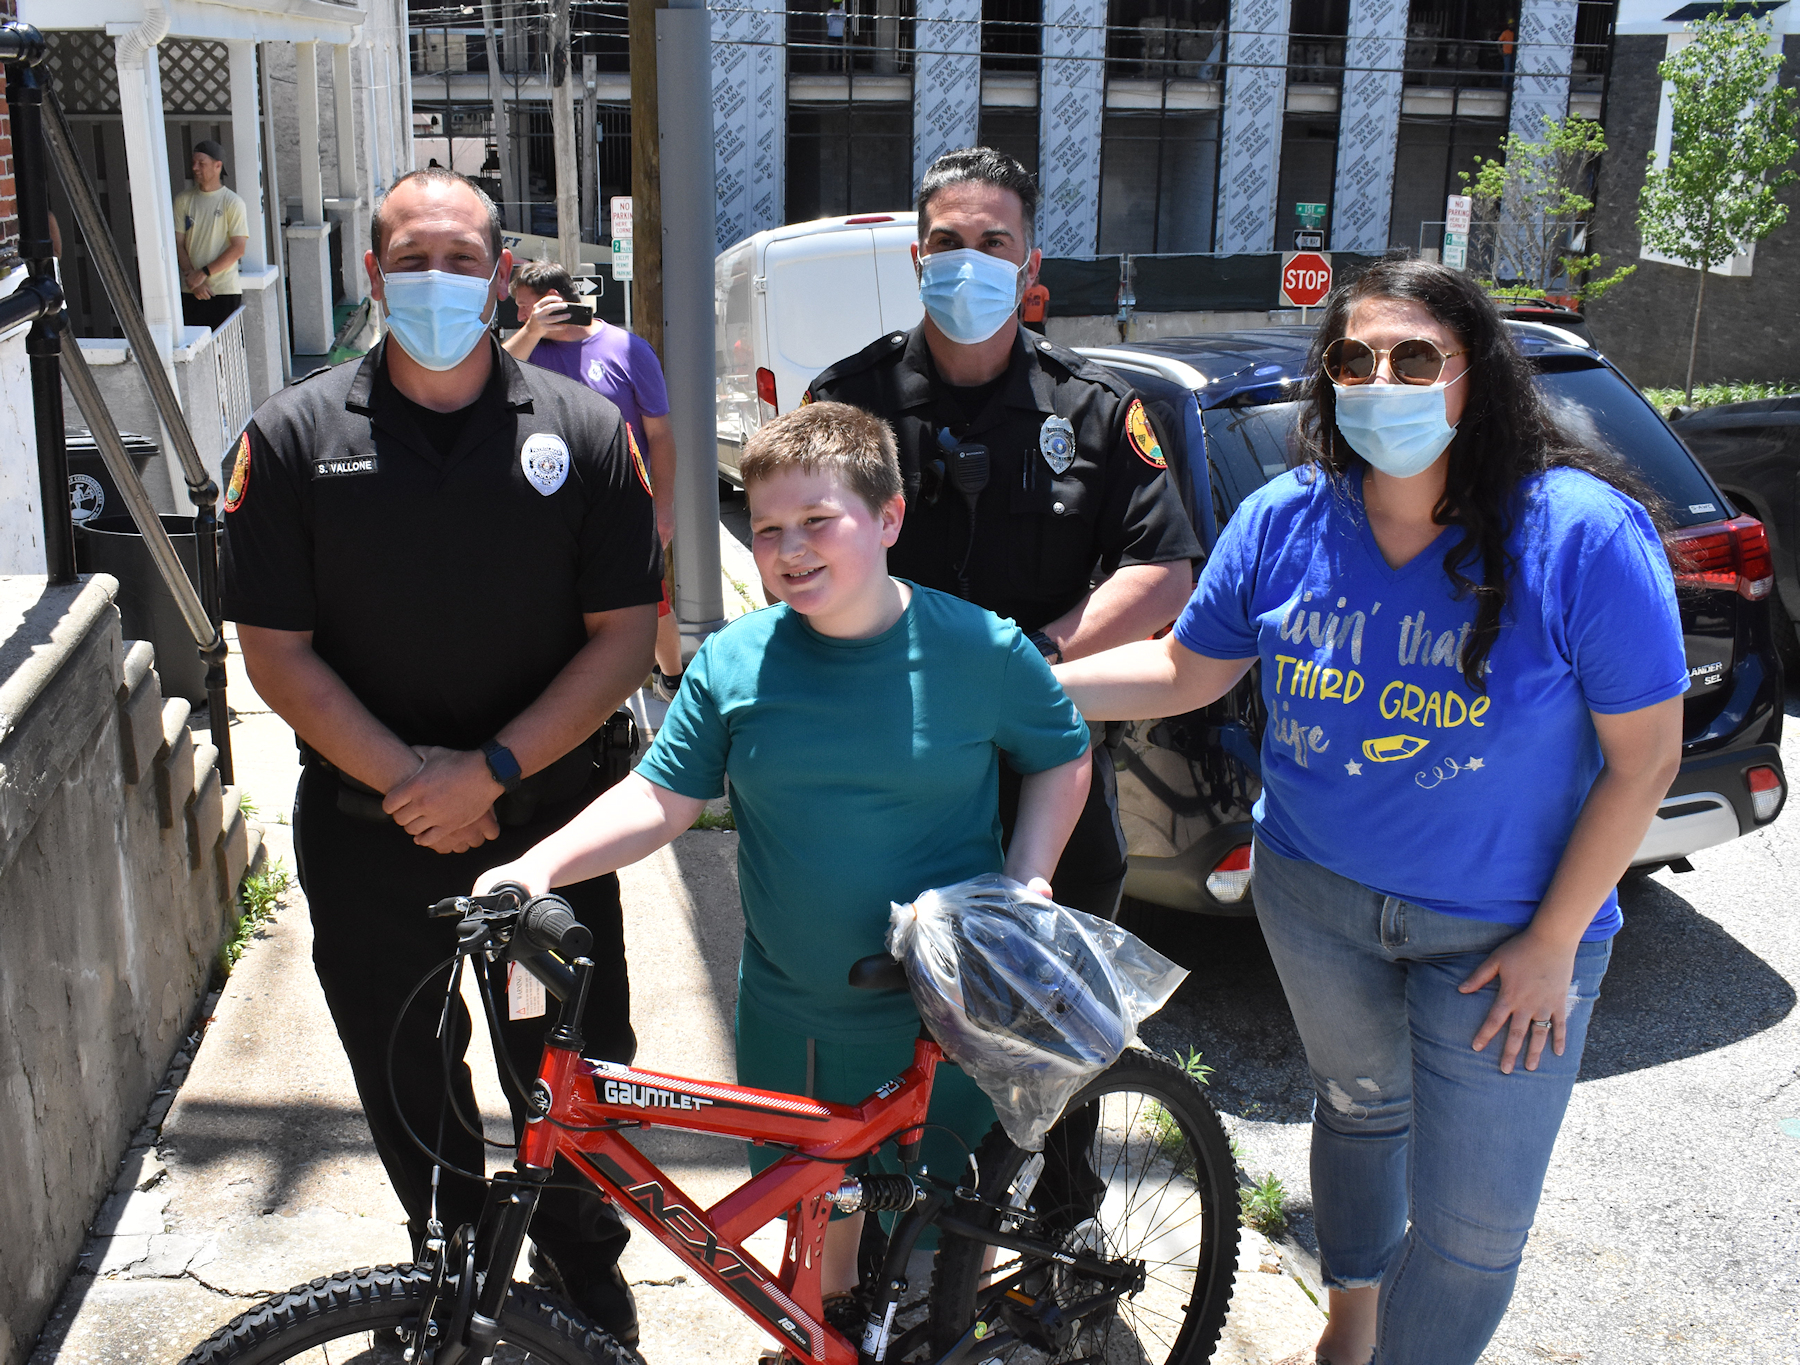 student with bicycle flanked by a teacher and two polic officers.